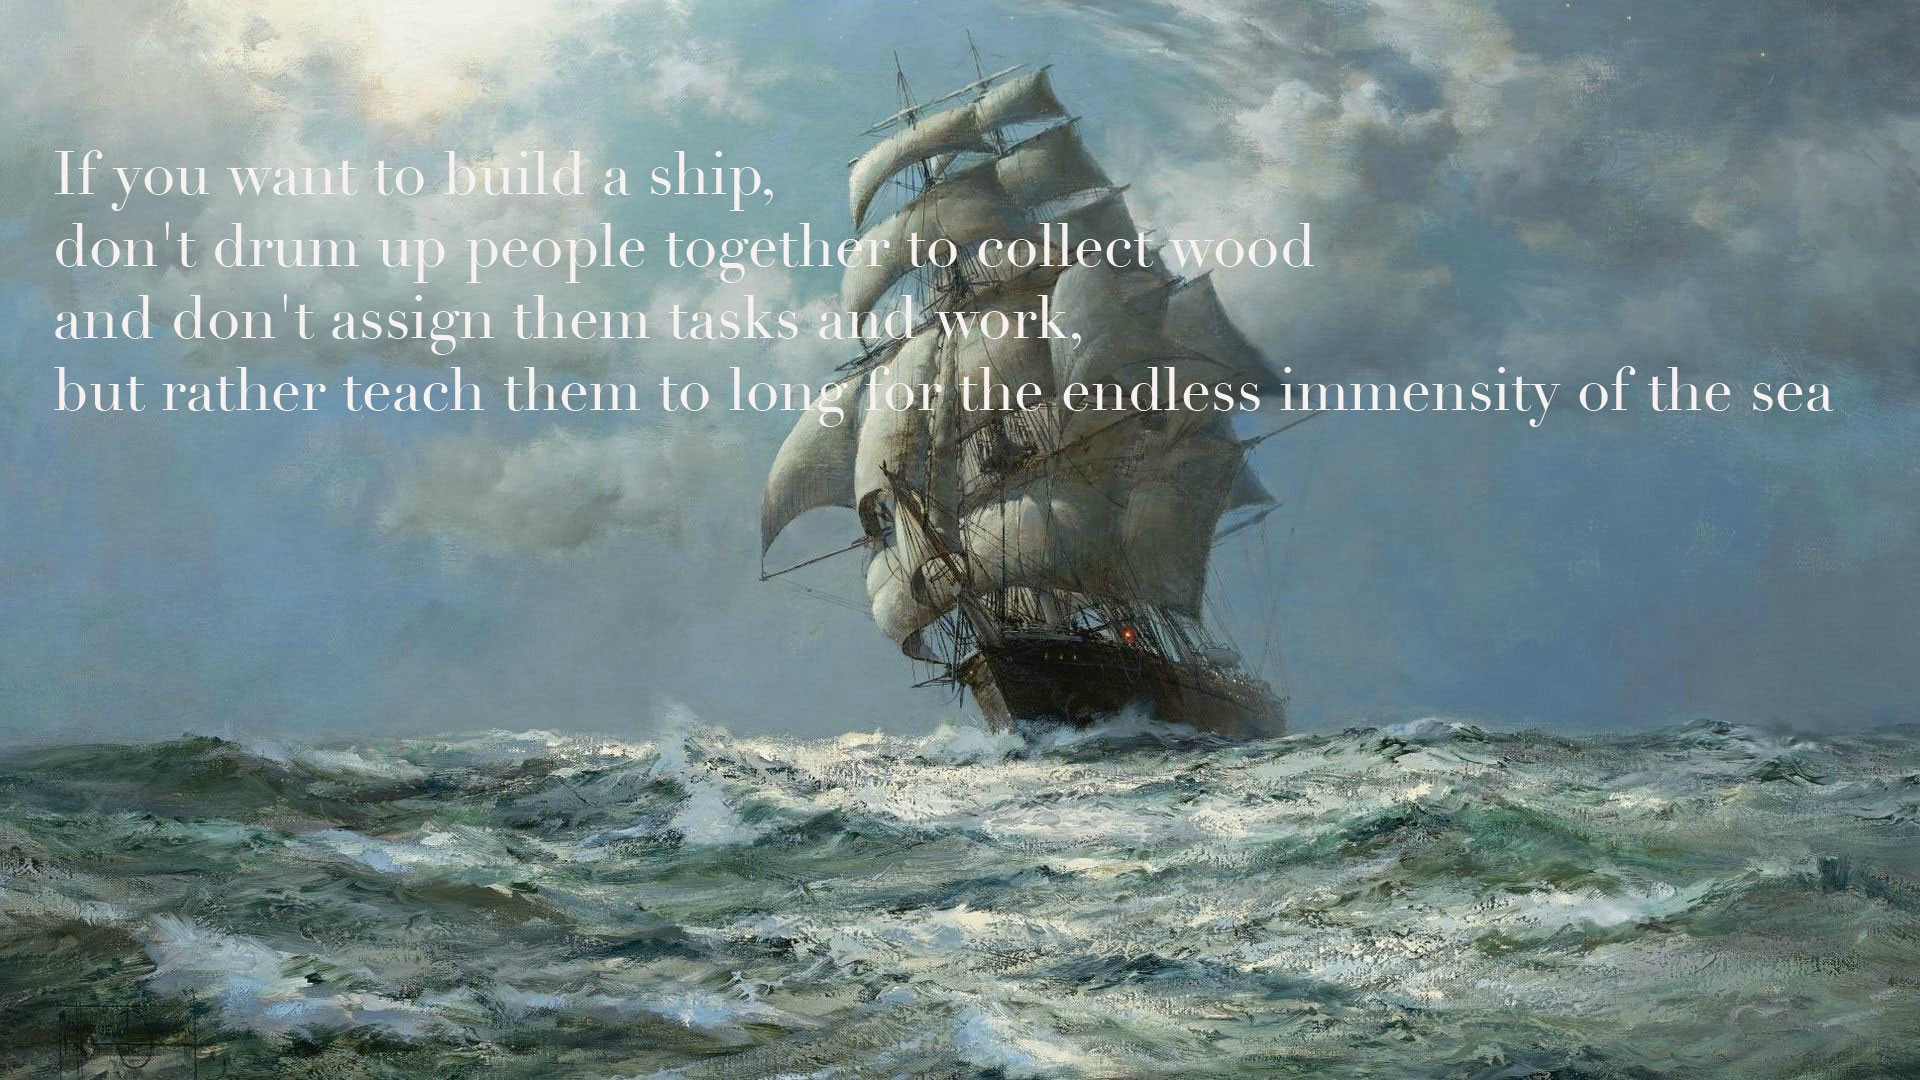 Cruise Ship Quotes And Sayings Quotesgram: Ship Quotes. QuotesGram